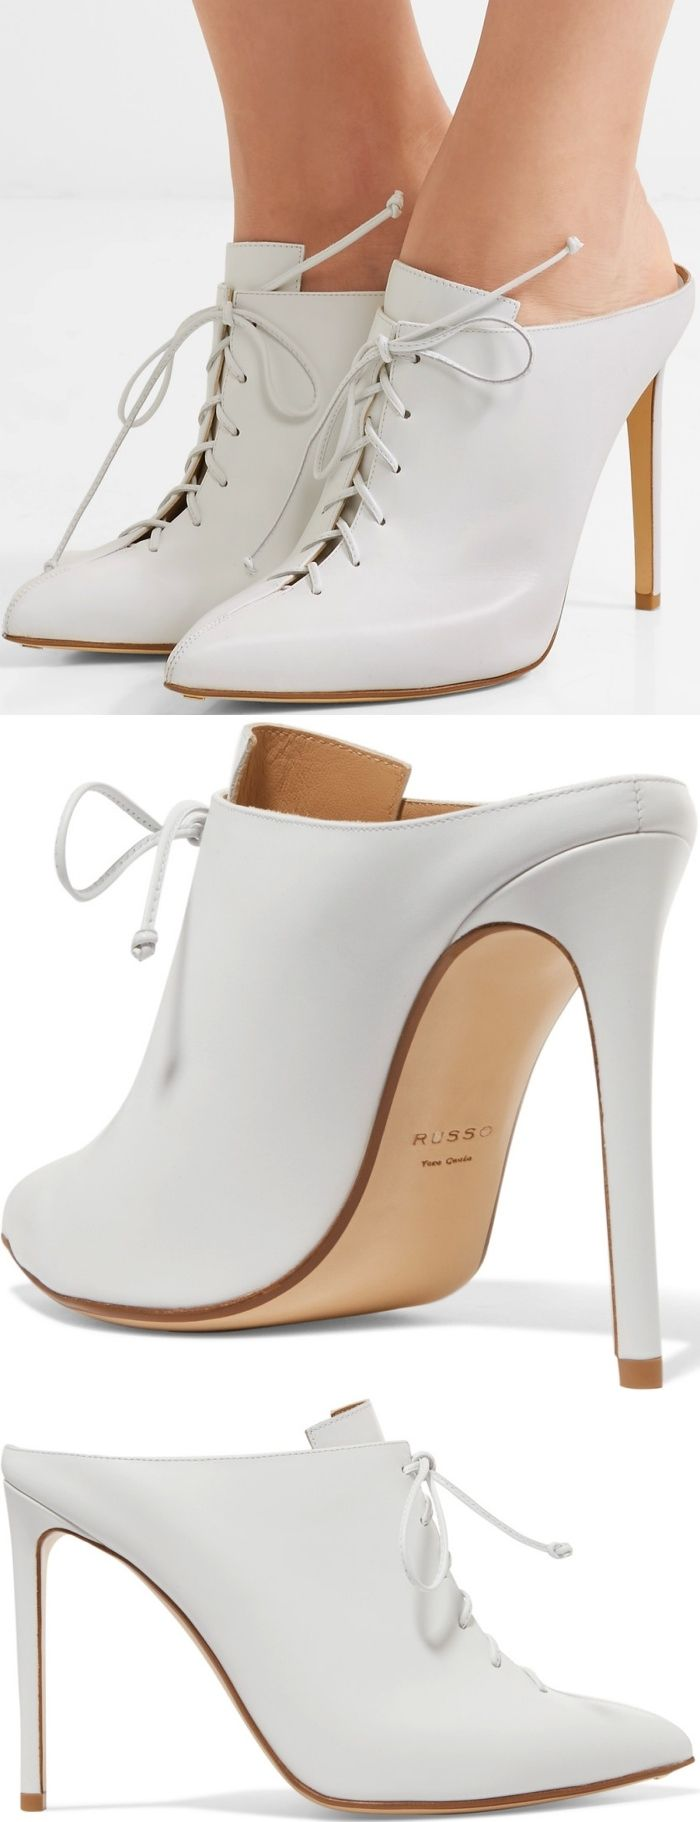 Add a Victoriana touch to your outfit with these white slip-ons from Francesco Russo. Crafted from smooth calf leather, these shoes feature lace-up details, pointed toes, high heels and a sleek silhouette.